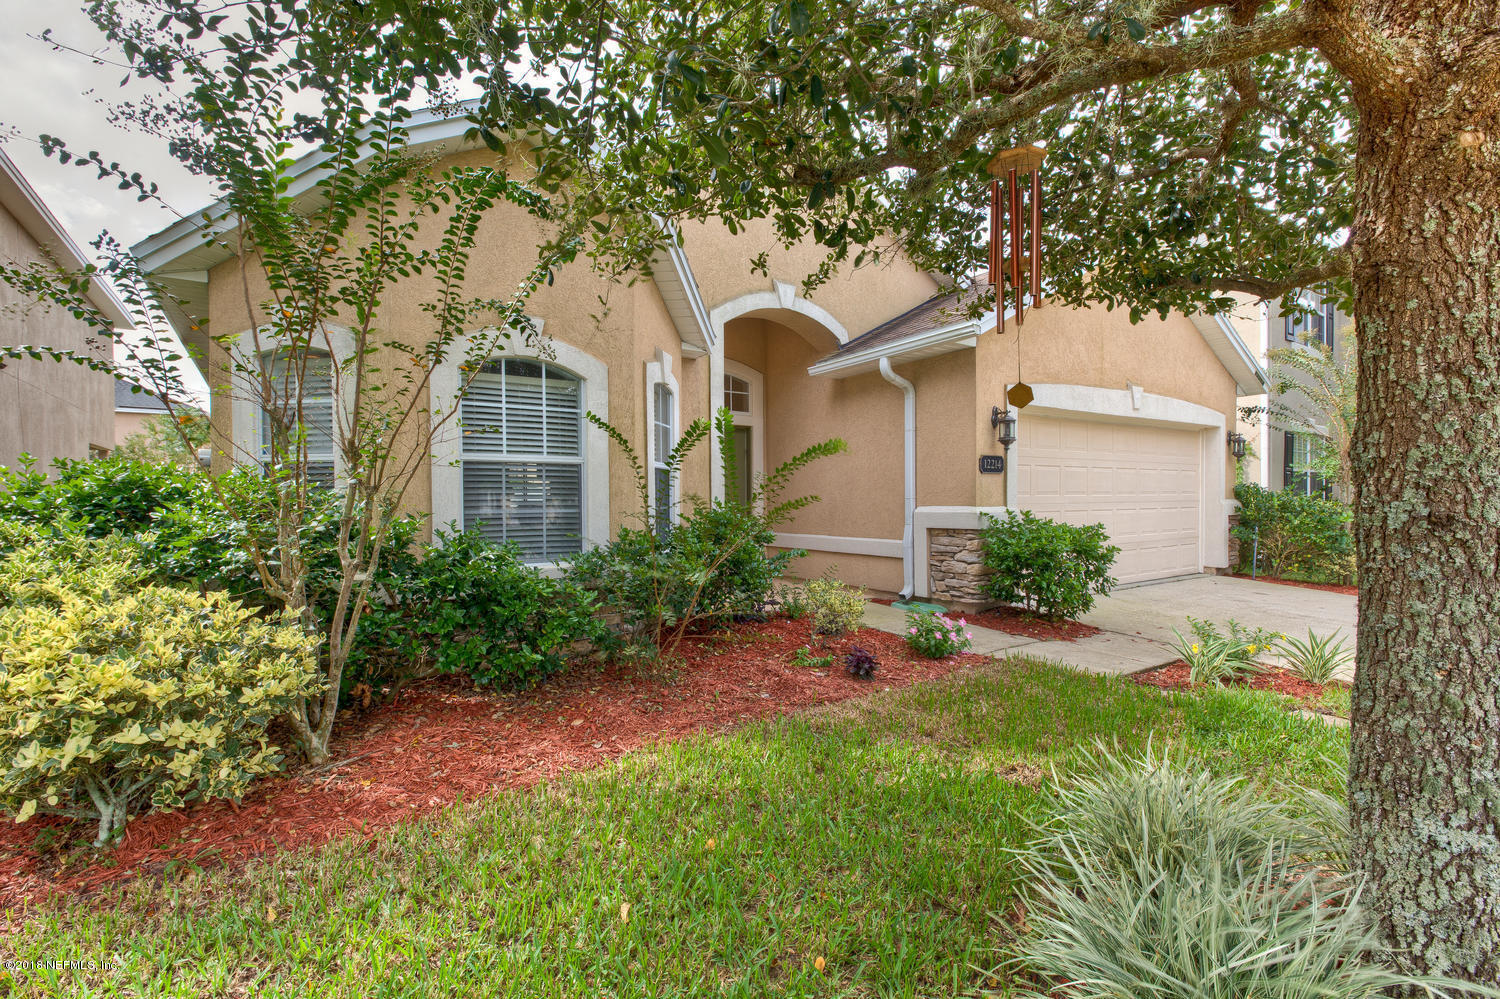 12214 WYNNFIELD LAKES, JACKSONVILLE, FLORIDA 32246, 4 Bedrooms Bedrooms, ,2 BathroomsBathrooms,Residential - single family,For sale,WYNNFIELD LAKES,960832